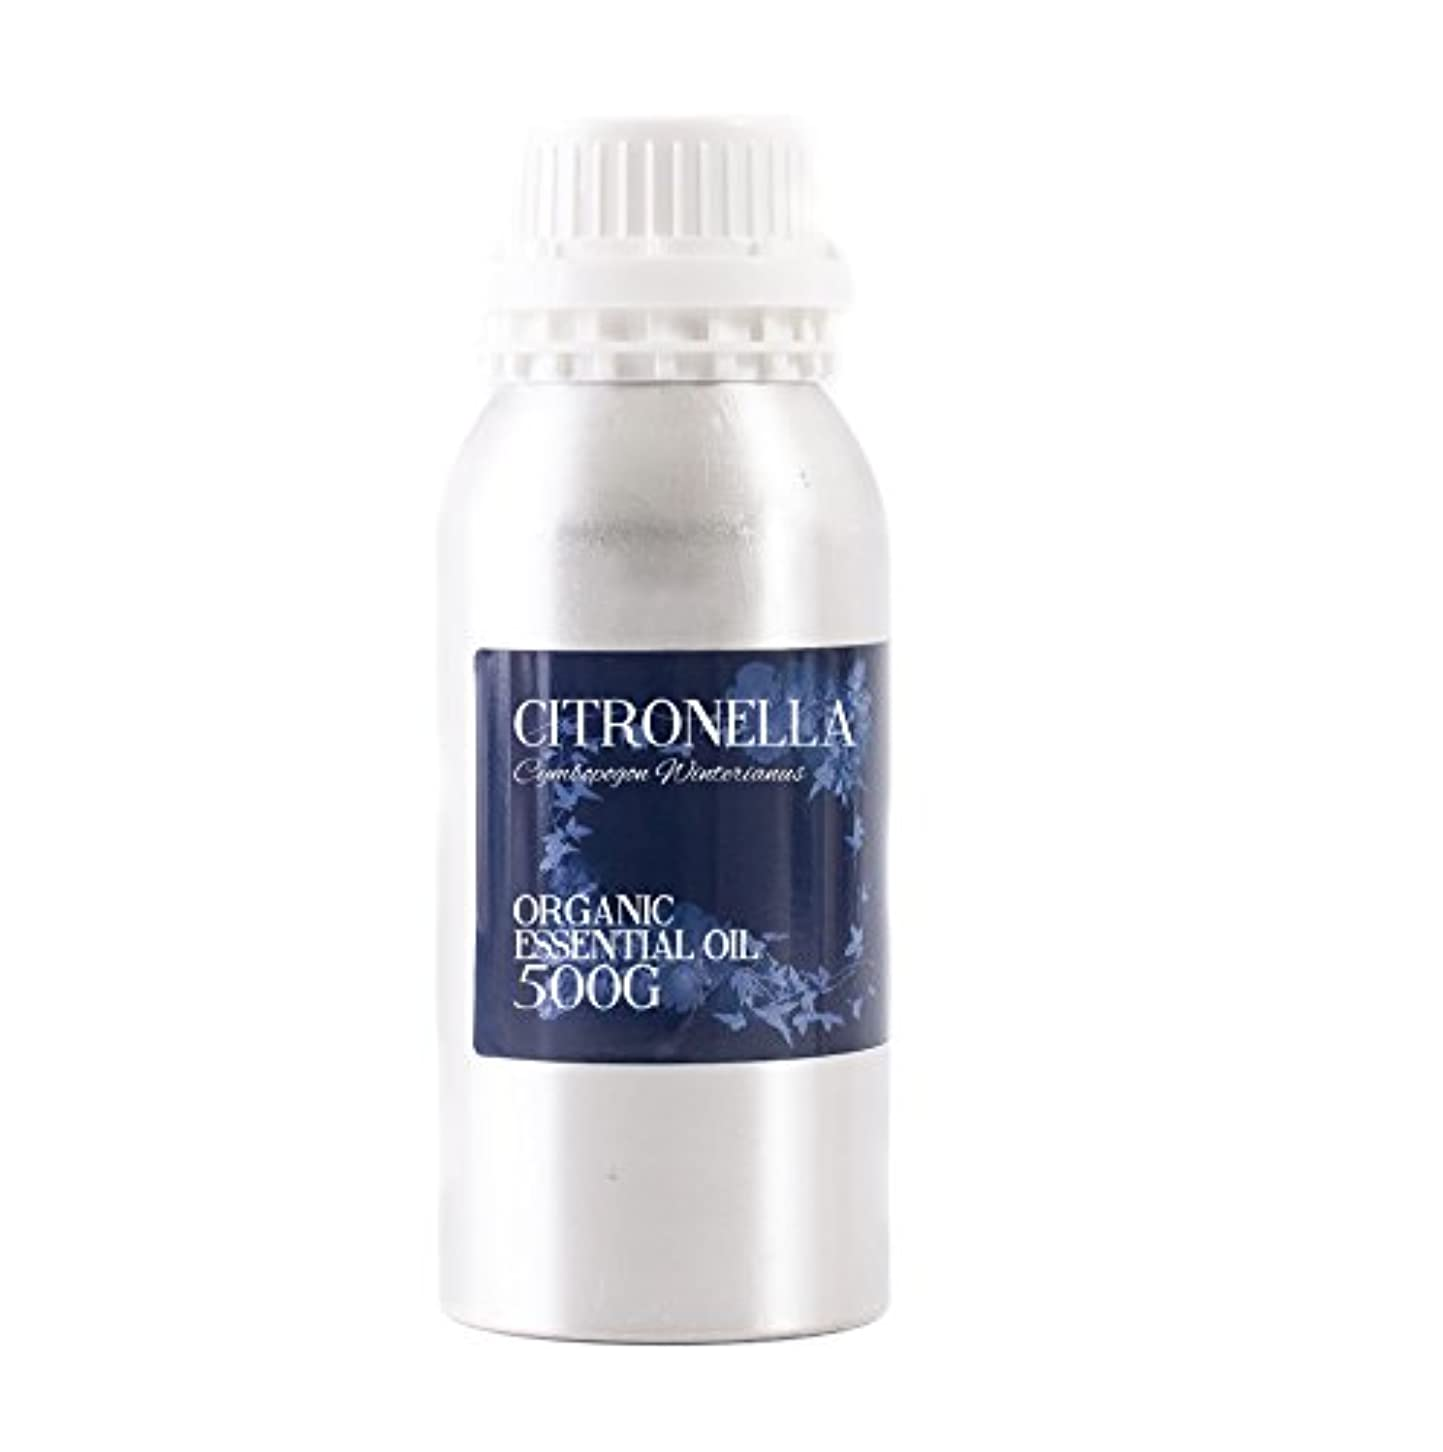 Mystic Moments | Citronella Organic Essential Oil - 500g - 100% Pure